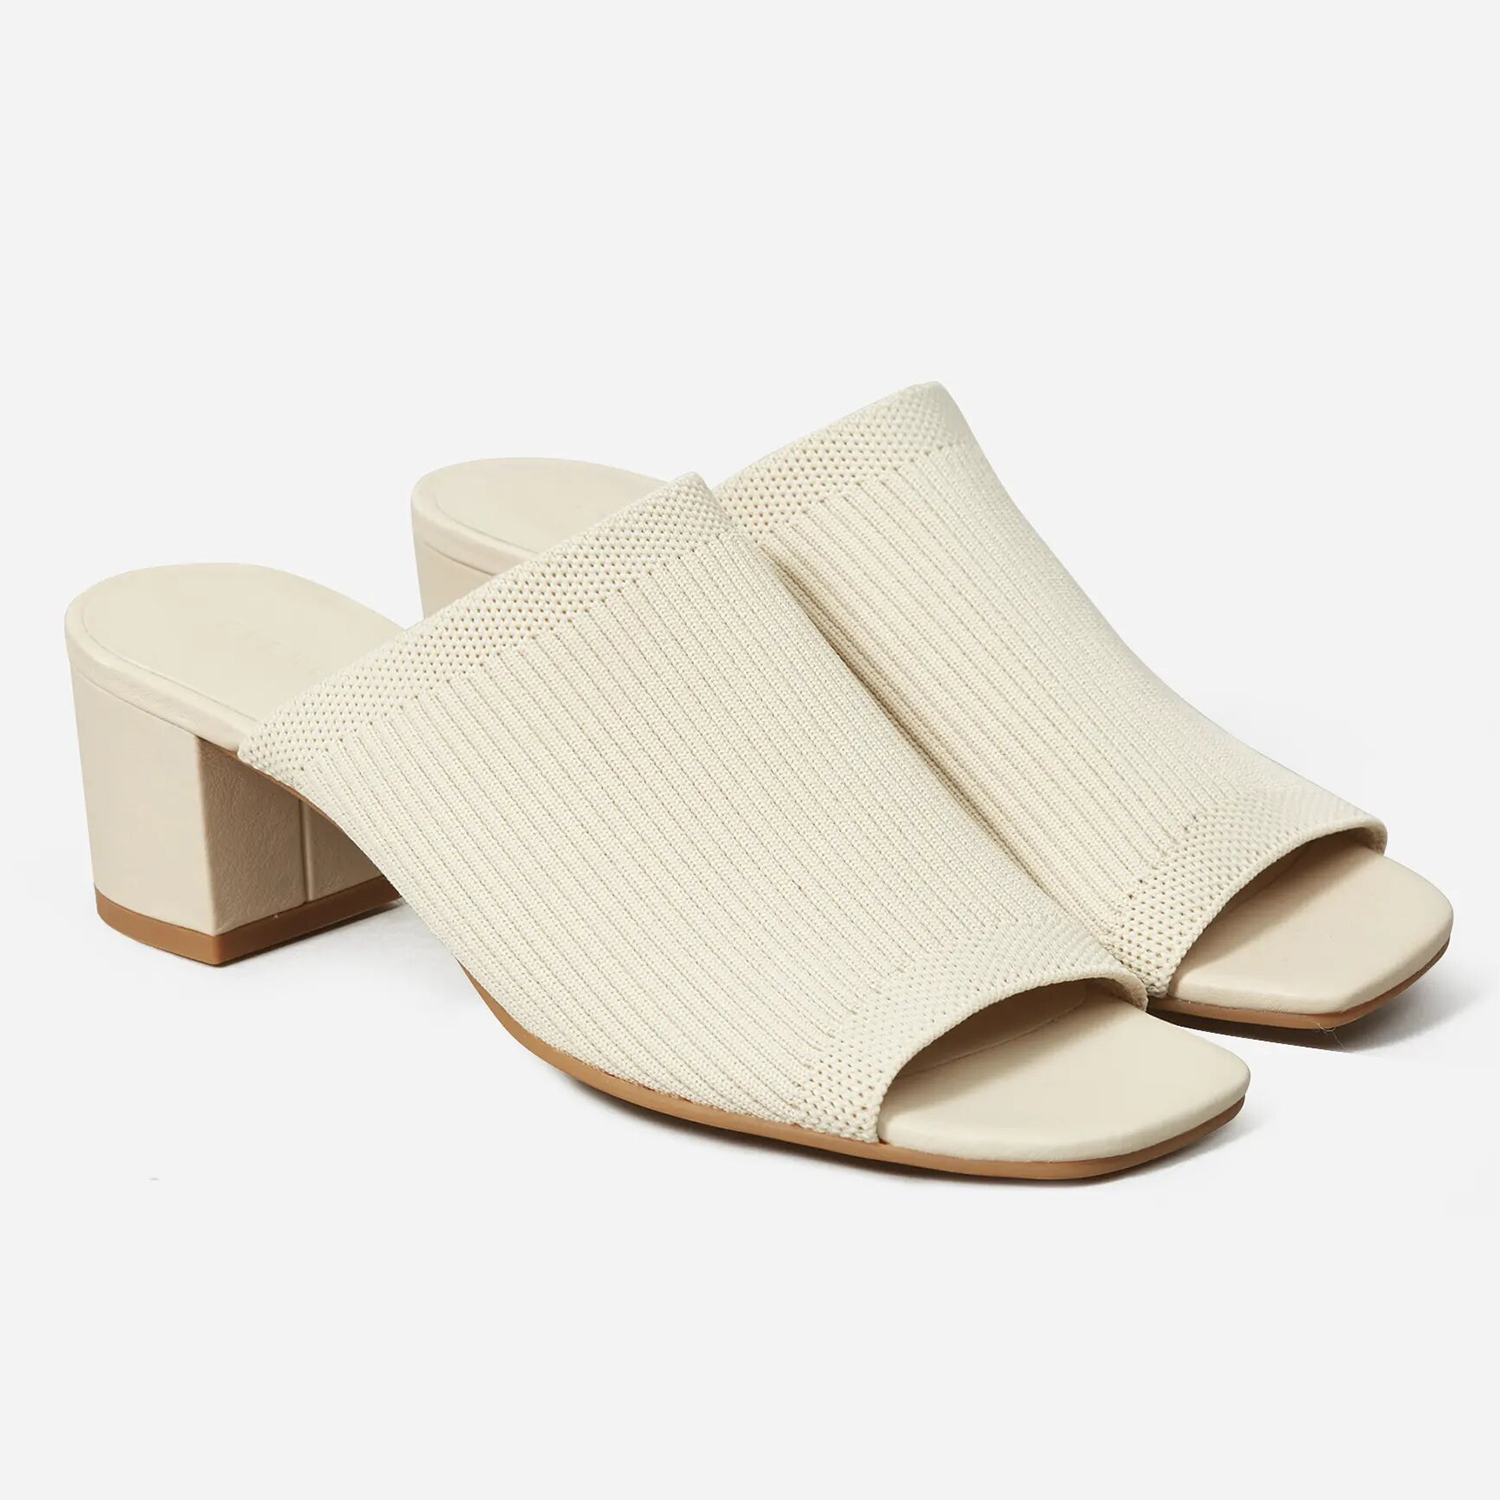 Everlane The Glove Mule in ReKnit